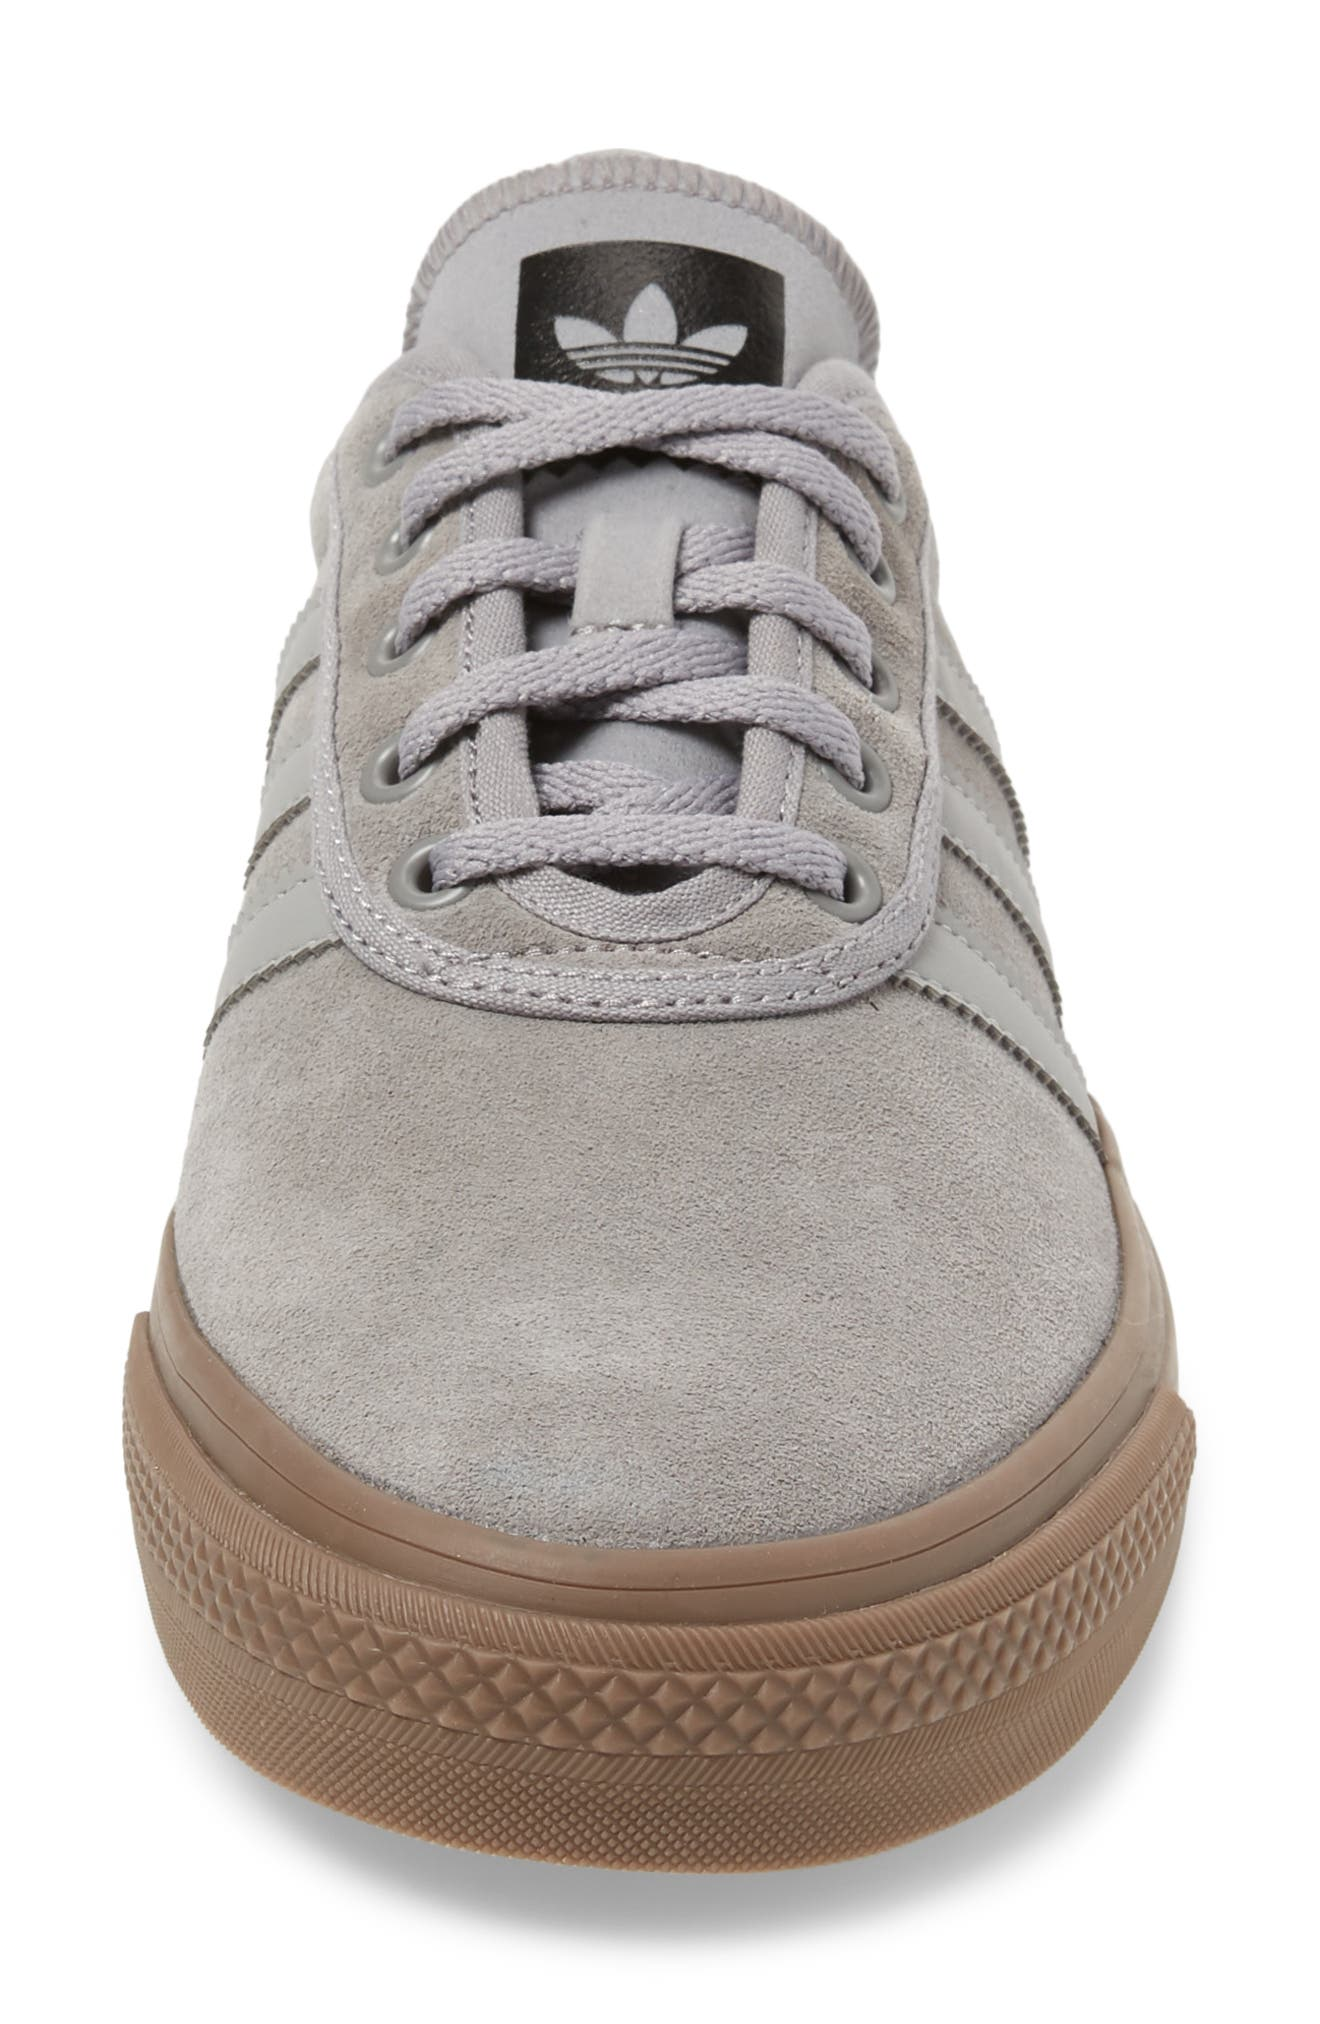 Adiease Skate Sneaker,                             Alternate thumbnail 4, color,                             SOLID GREY/ SOLID GREY/ GUM